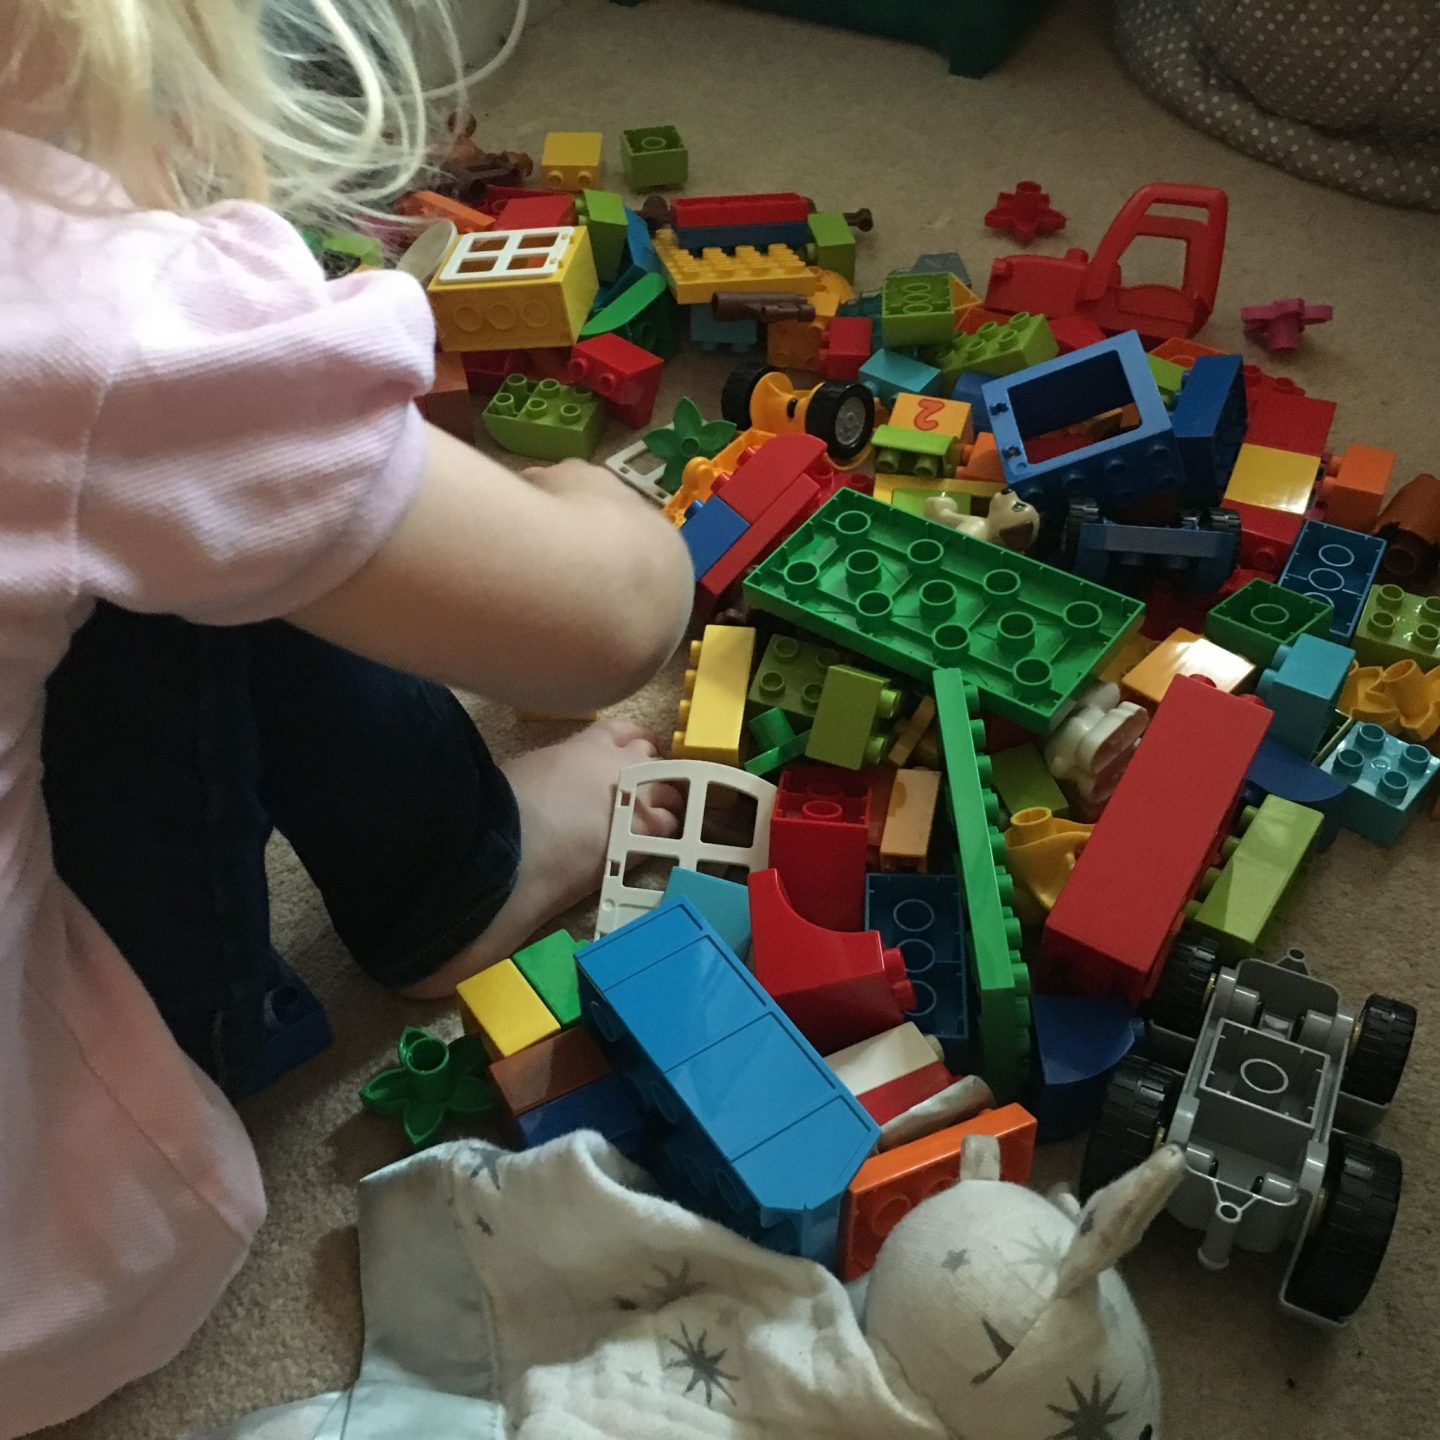 Annoying baby and toddler product design flaws